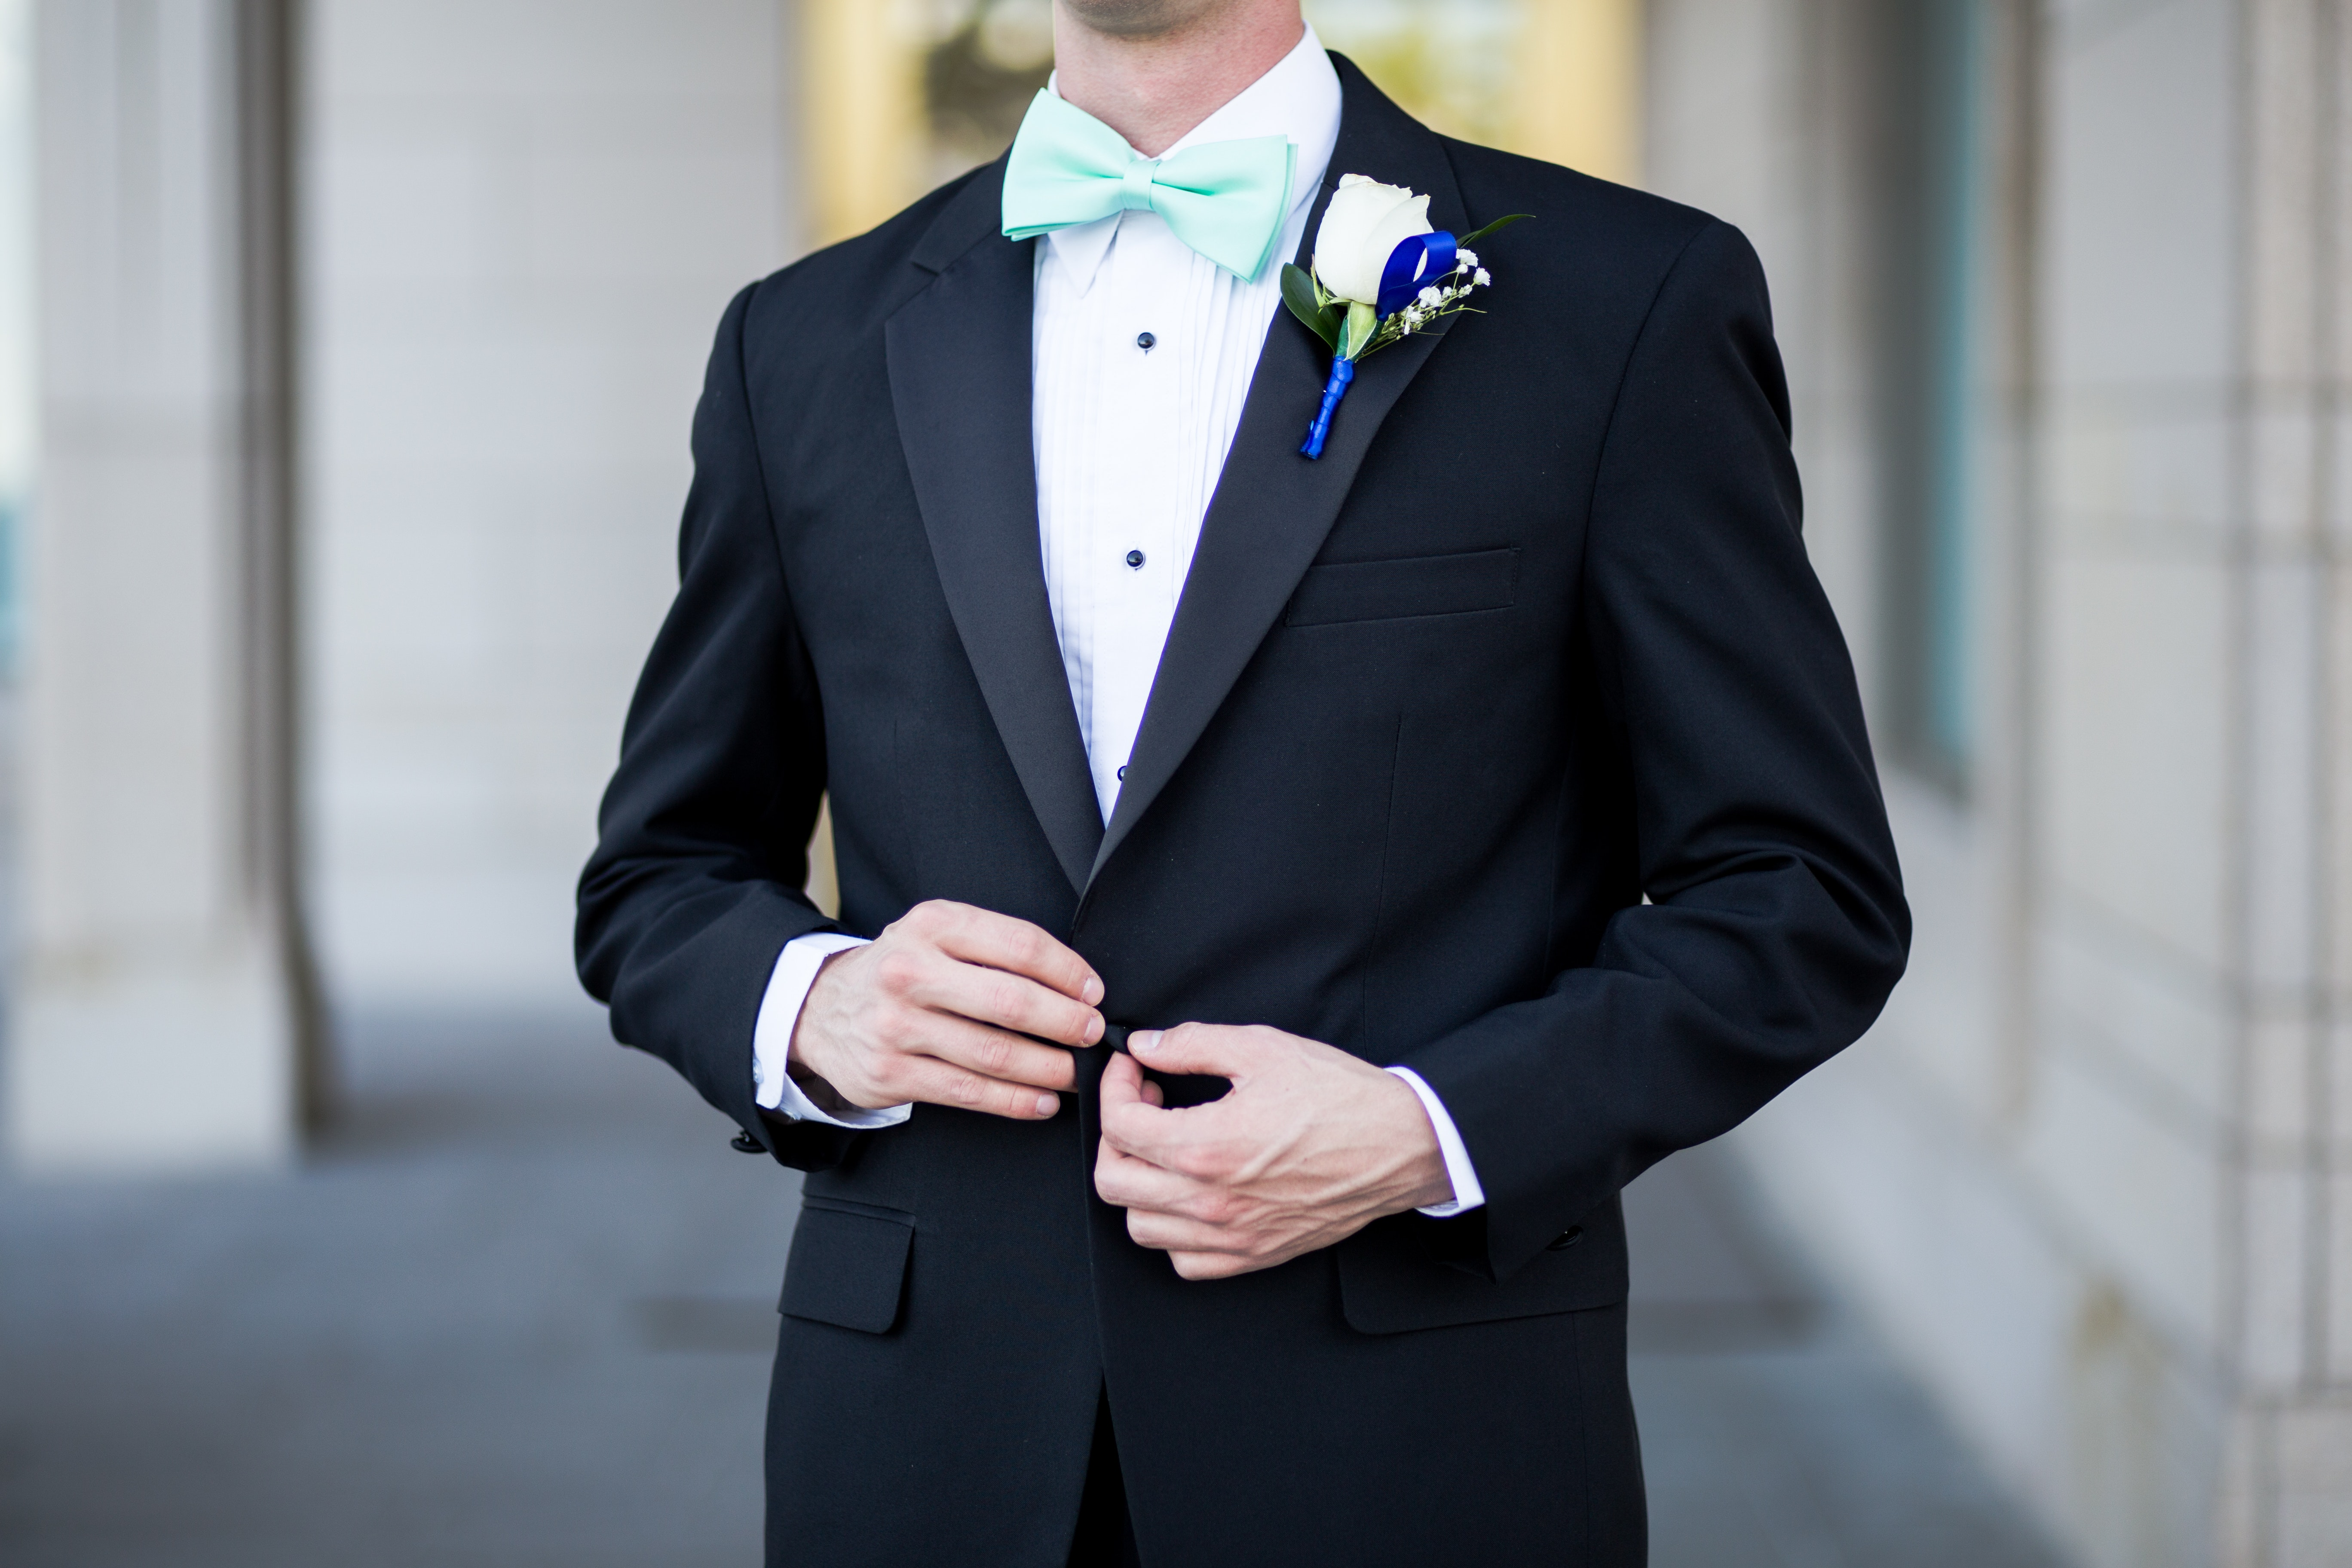 National Tuxedo Rentals 5% Off Military Discount